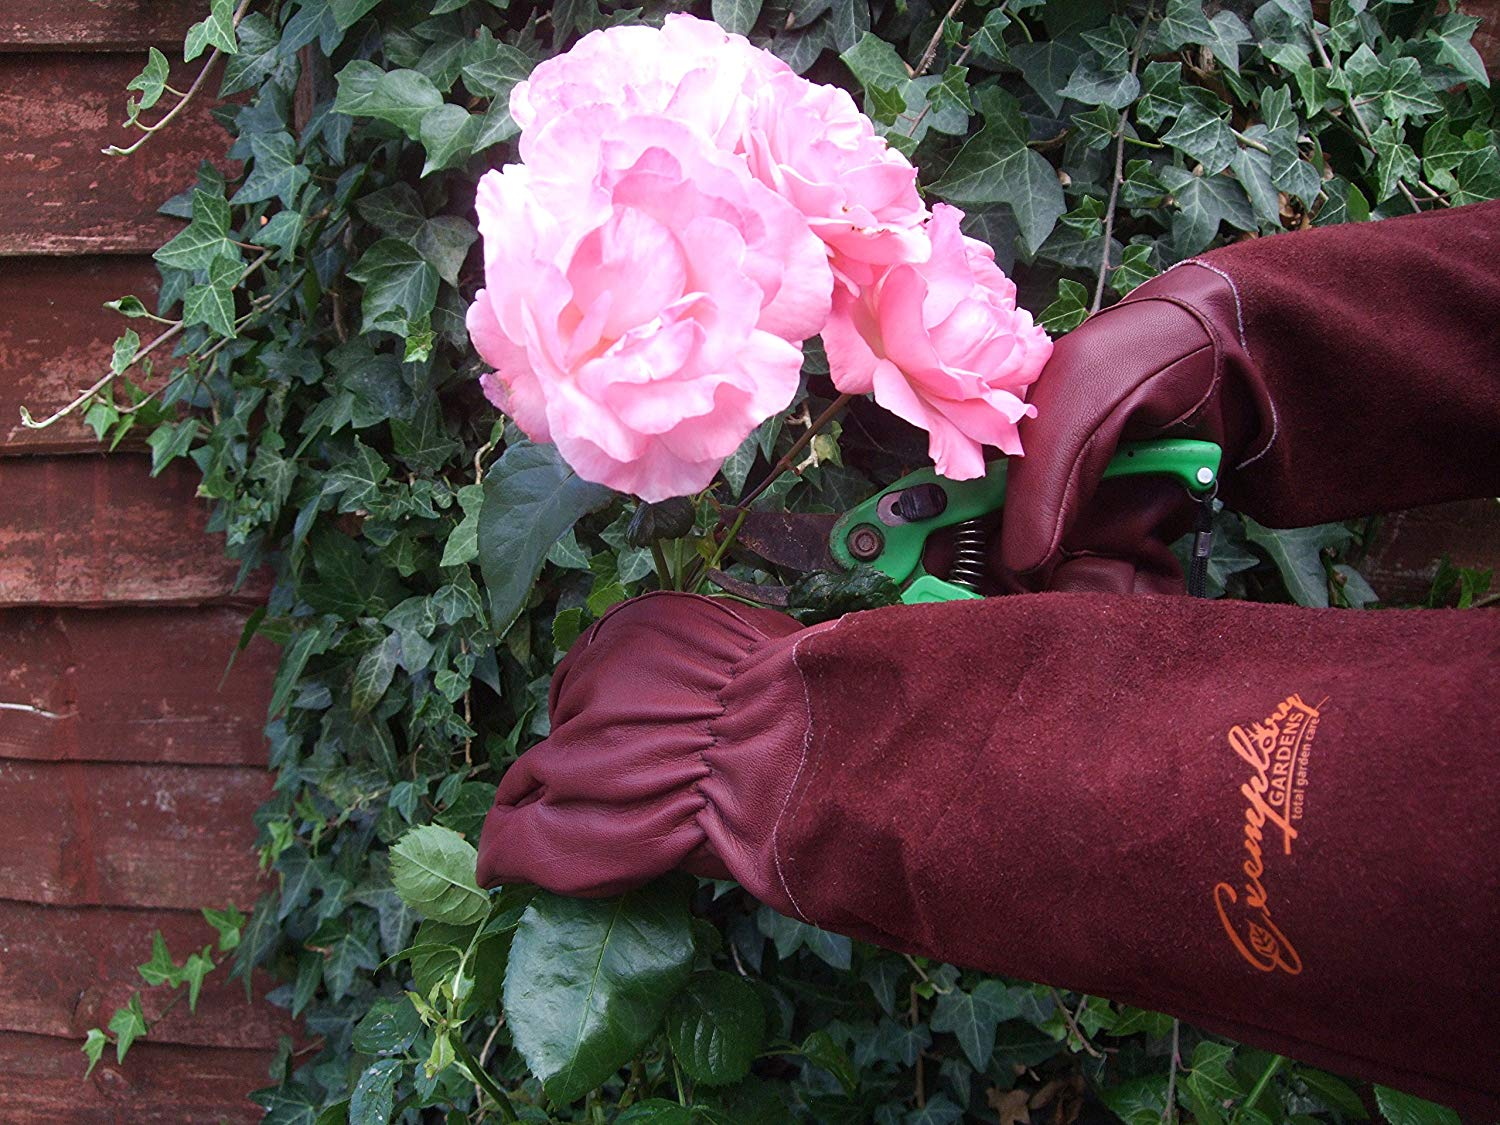 Rose Pruning Gauntlet Unisex Goatskin Leather Gardening Gloves